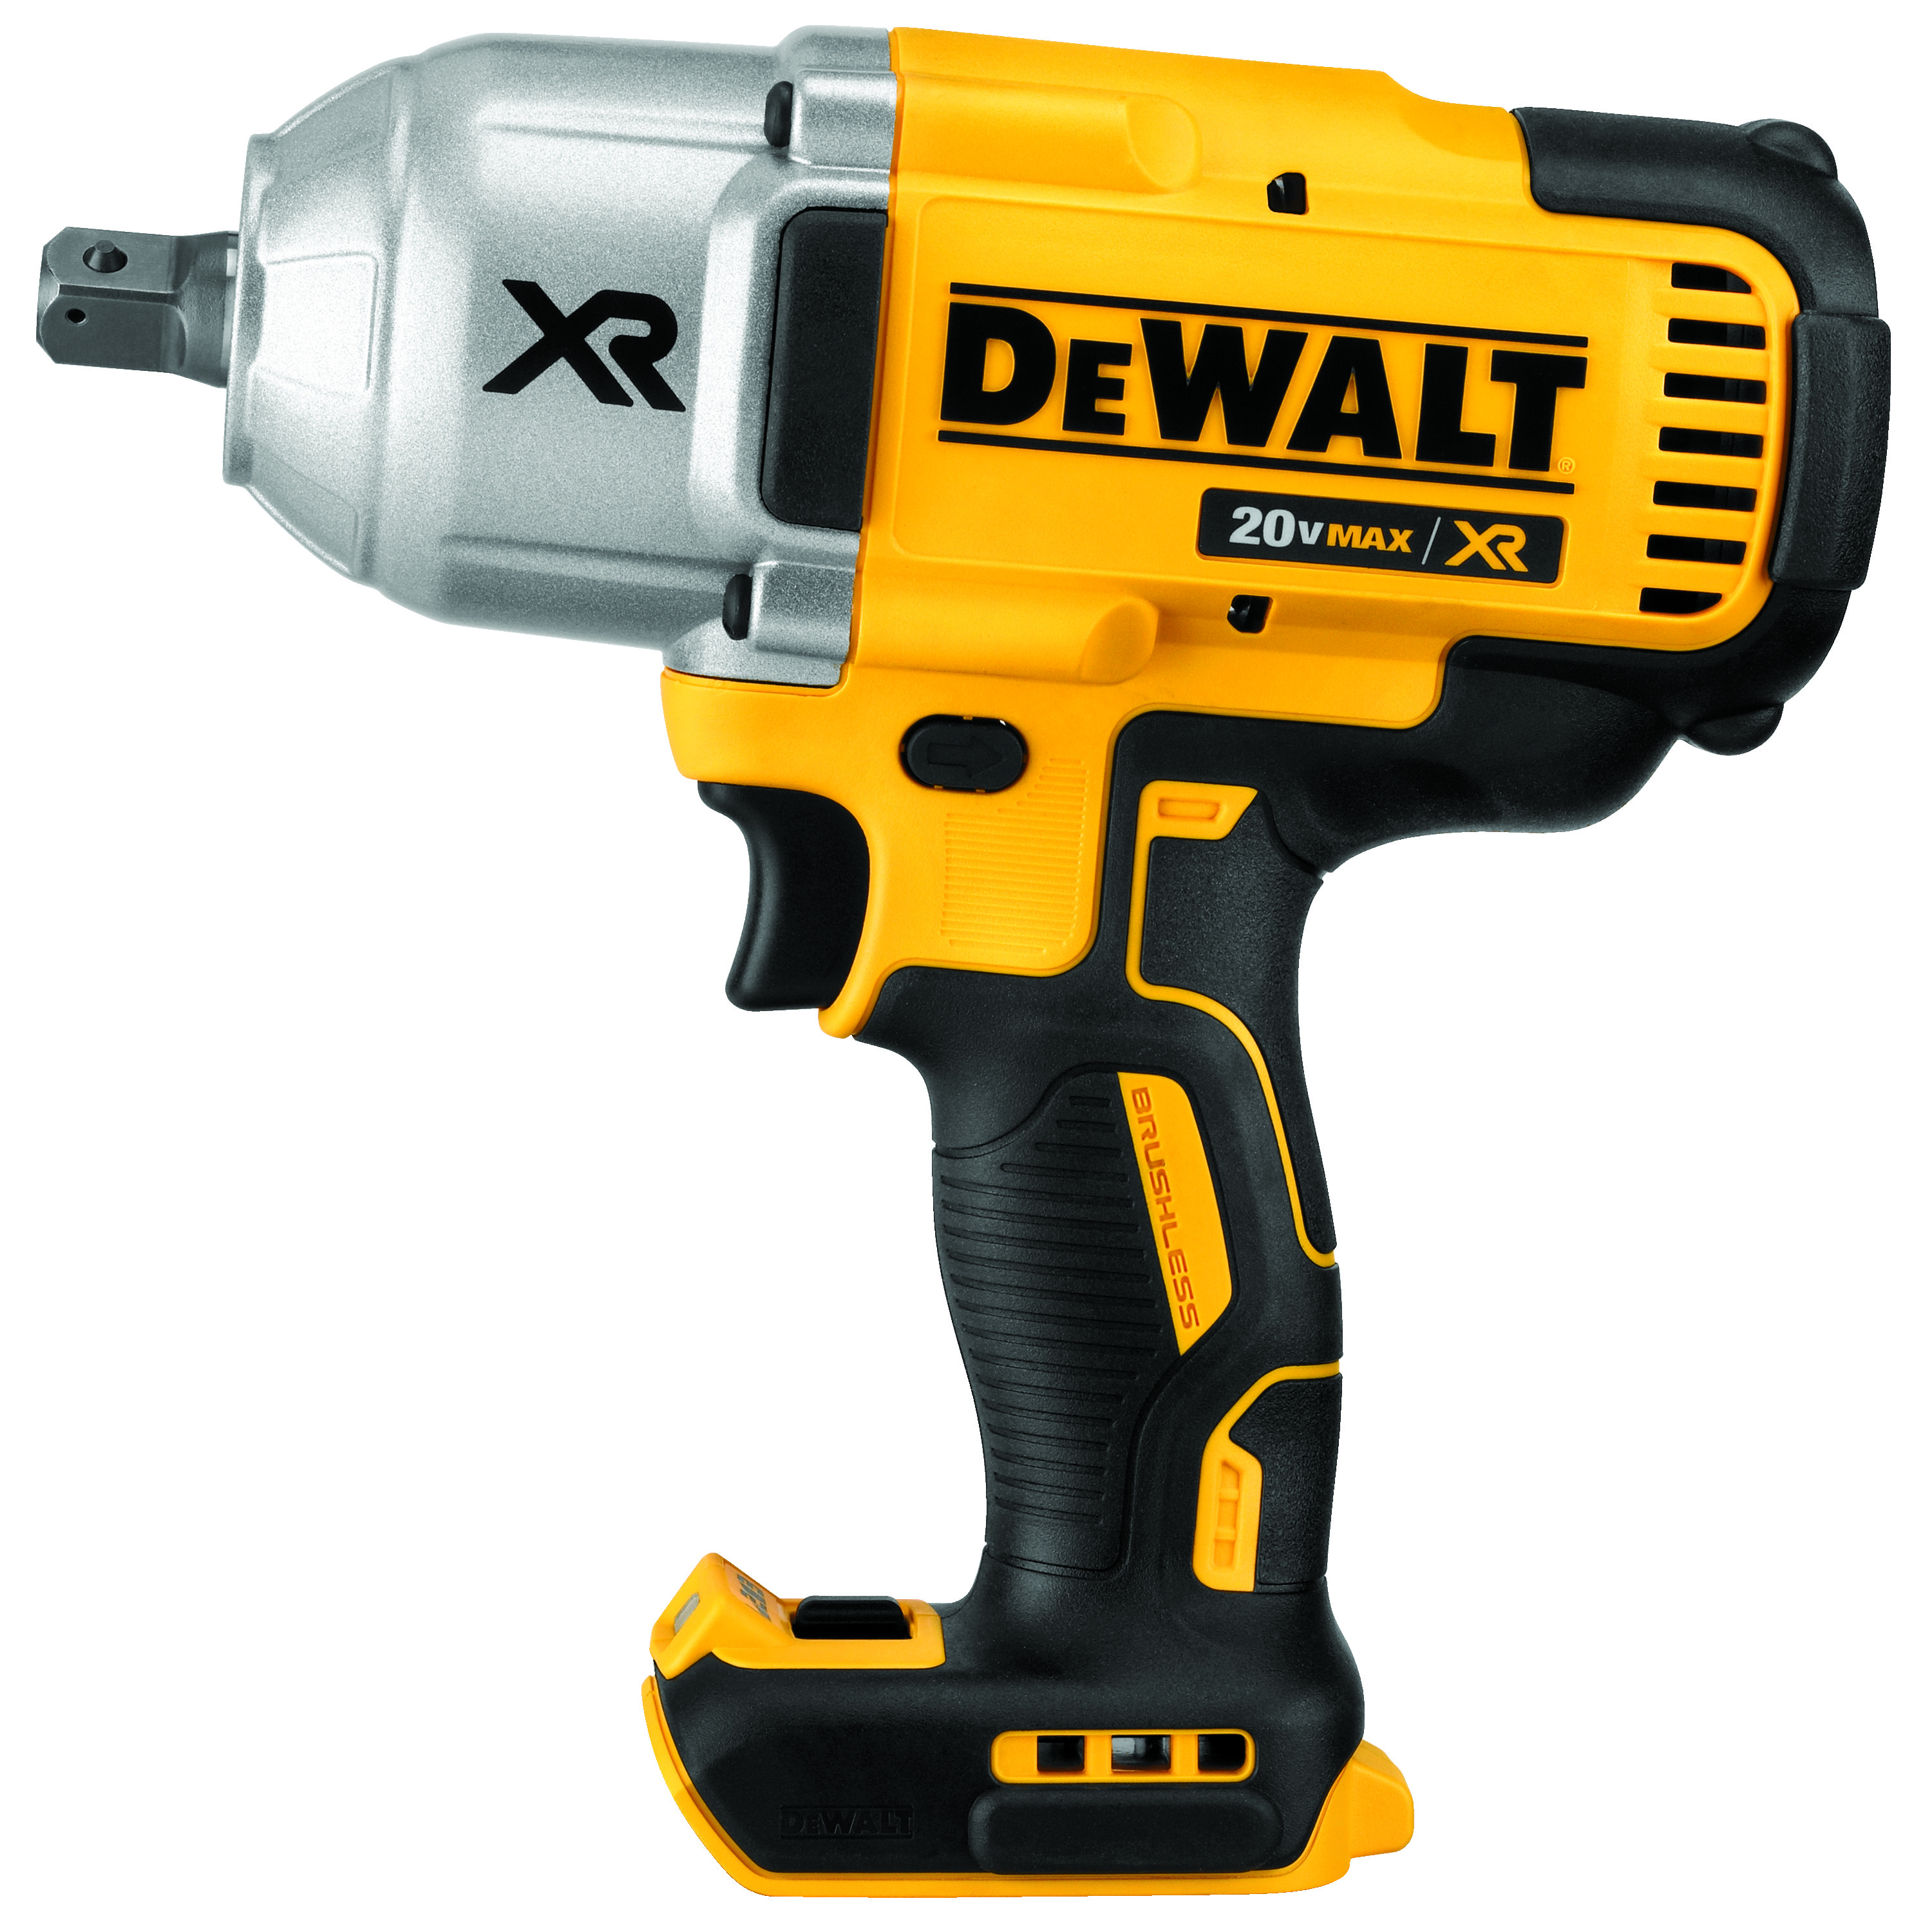 DeWALT® 20V MAX* MATRIX™ XR™ DCF899B Compact Cordless Impact Wrench, 1/2 in Straight Drive, 700 ft-lb Torque, 20 VDC, 8-13/16 in OAL, Tool Only